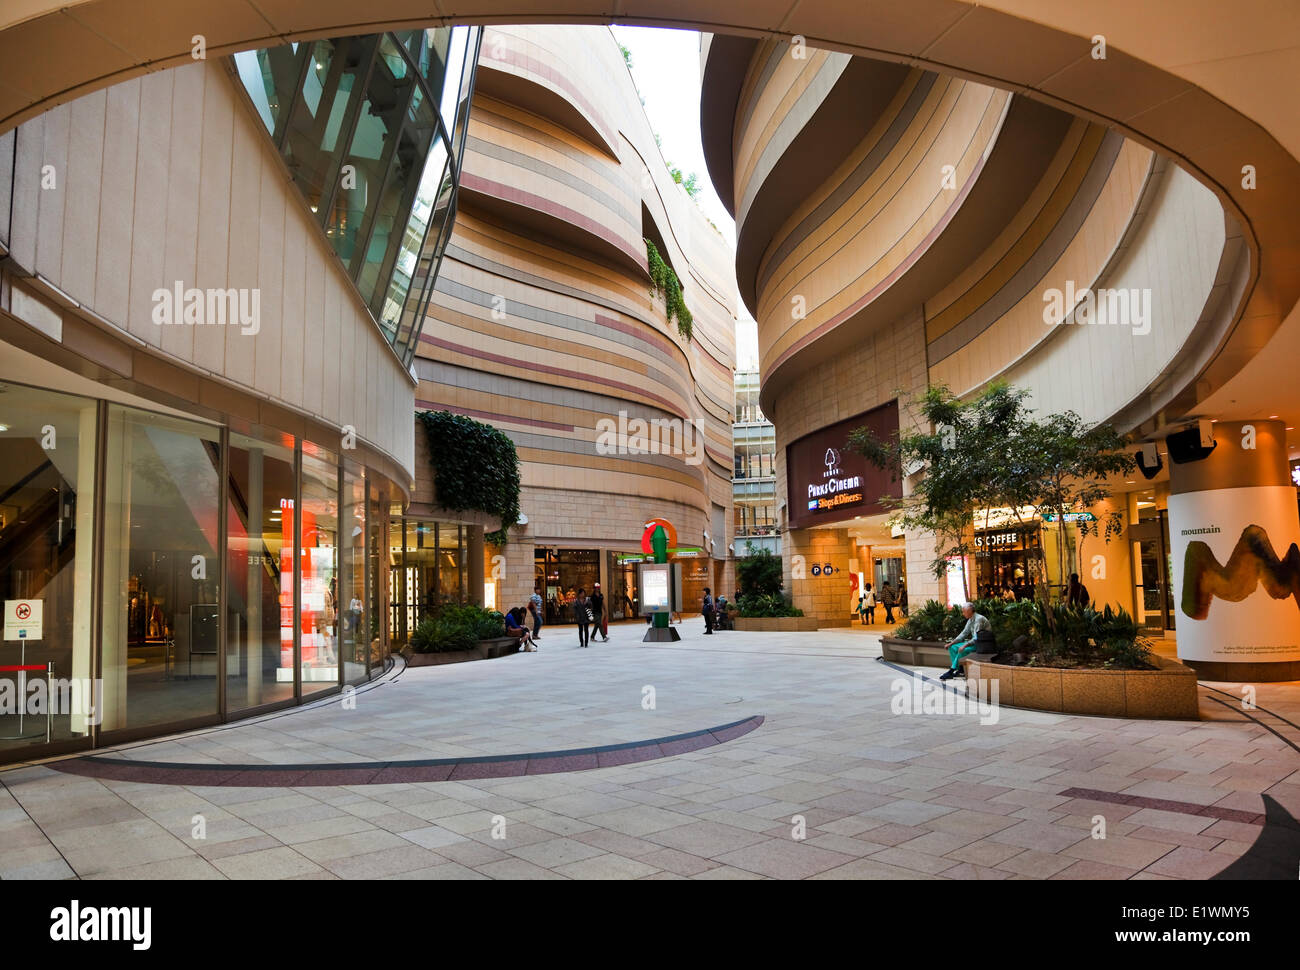 Replica of the Grand Canyon that runs through the middle of Namba Parks shopping mall in Osaka, Japan. The office - Stock Image